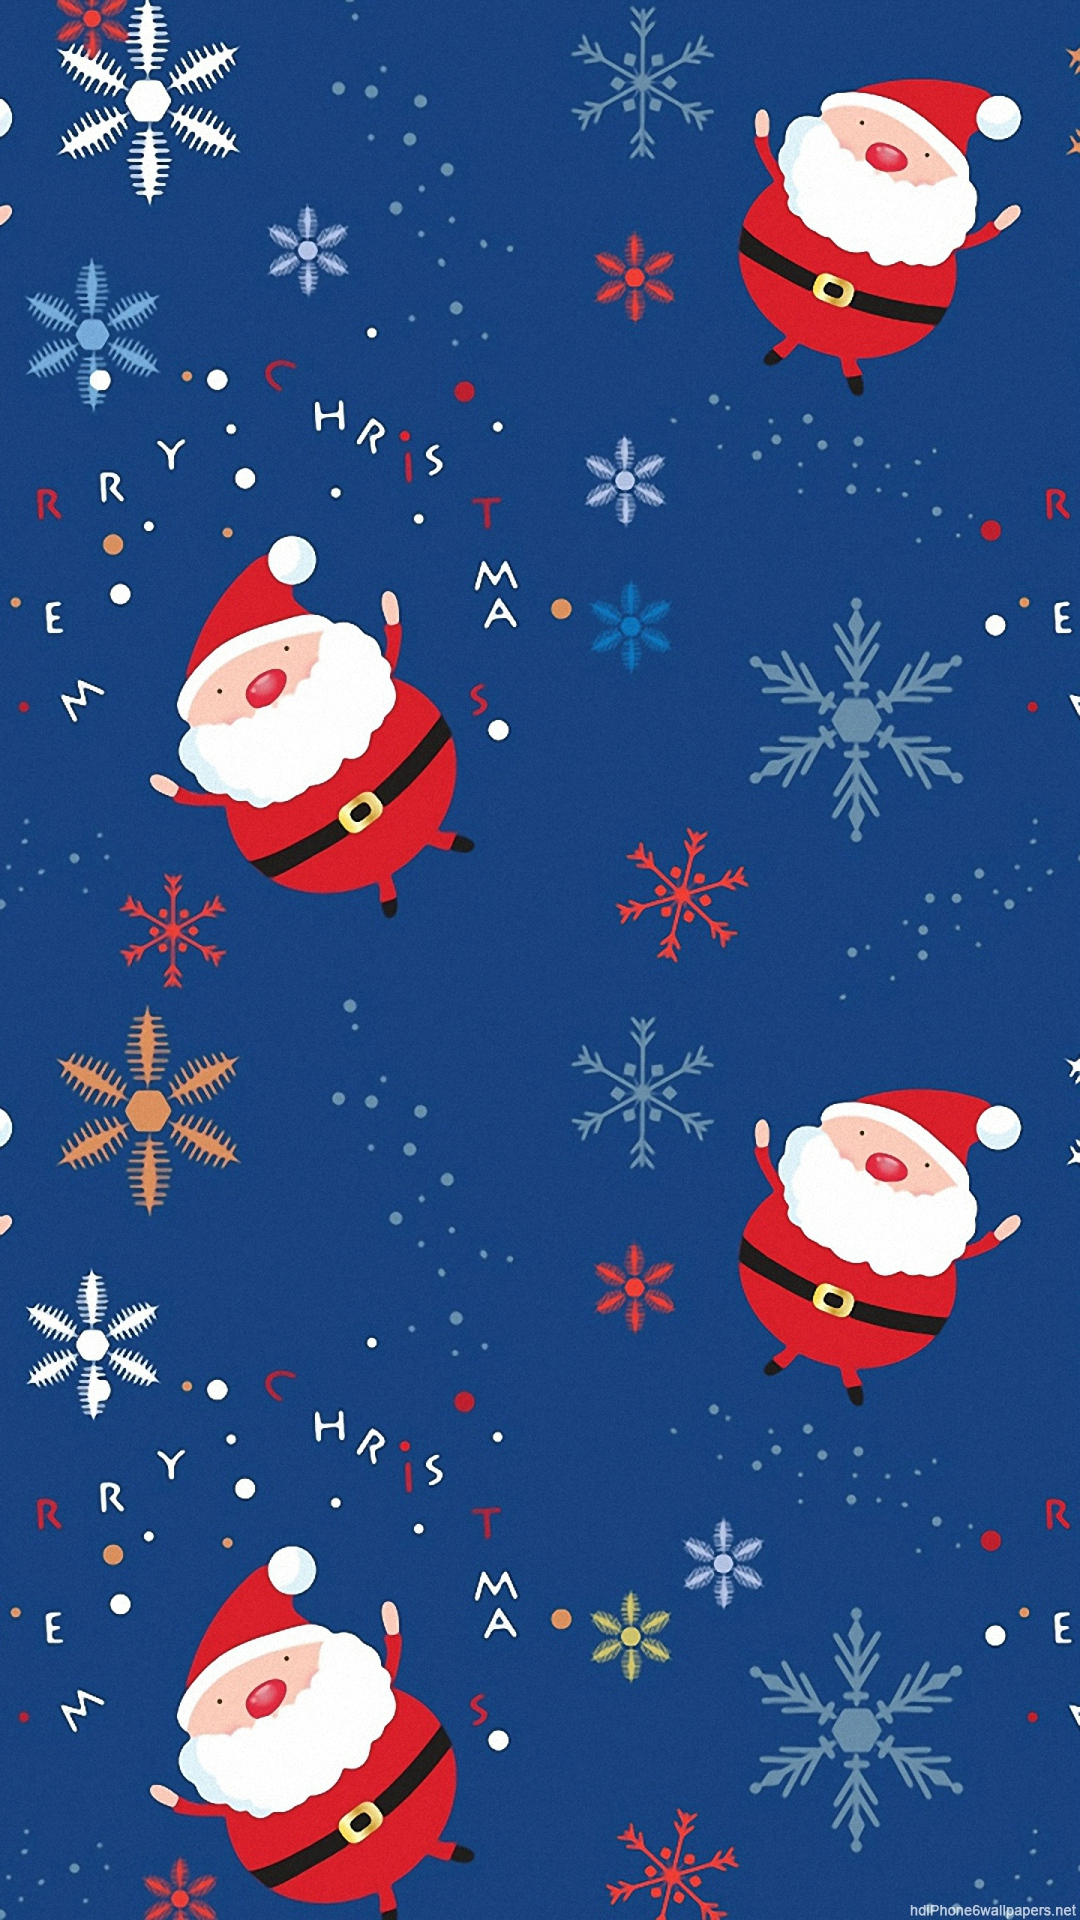 Hd wallpaper home screen - Christmas Home Screen